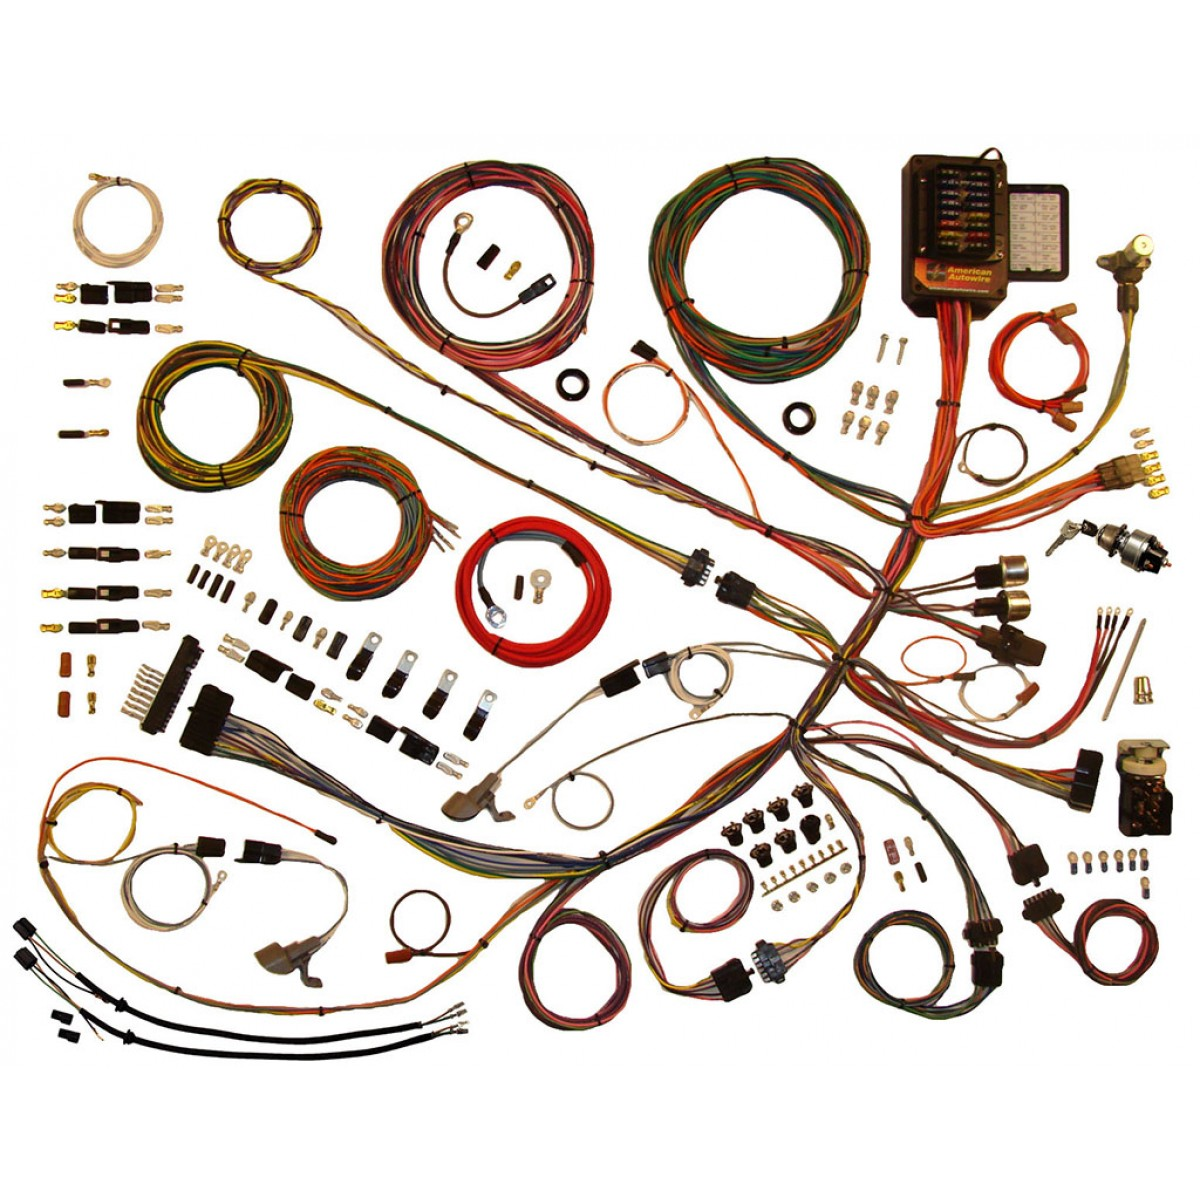 complete wiring harness kit 1953 1956 ford f100 part 510303 ford truck wiring harness f100 1953 1956 ford f100 wiring harness complete wiring harness kit ford wiring harness at mifinder.co